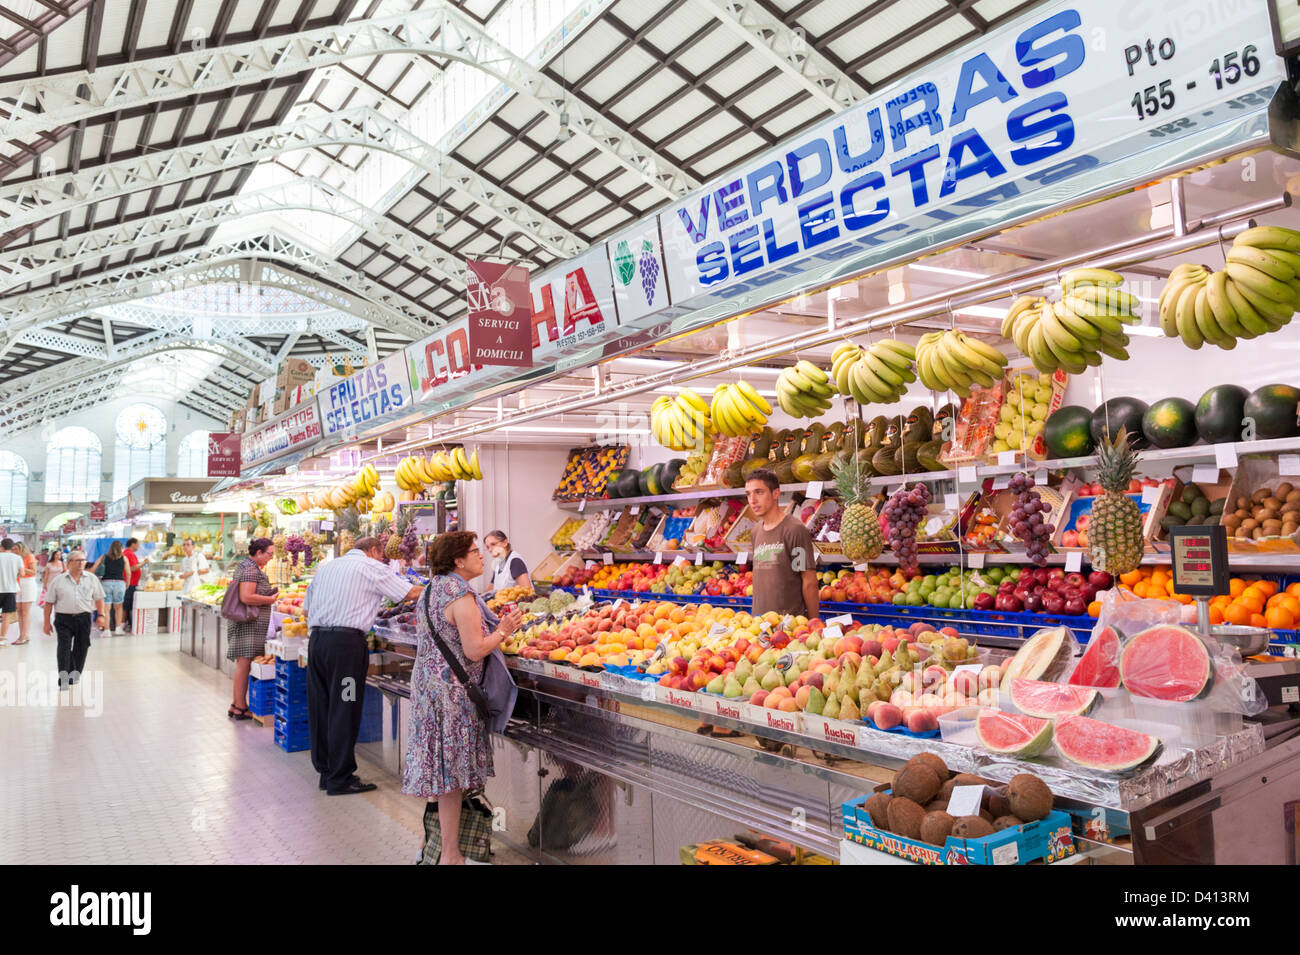 Fruit and vegetable stall in the Central Market, Valencia, Spain - Stock Image